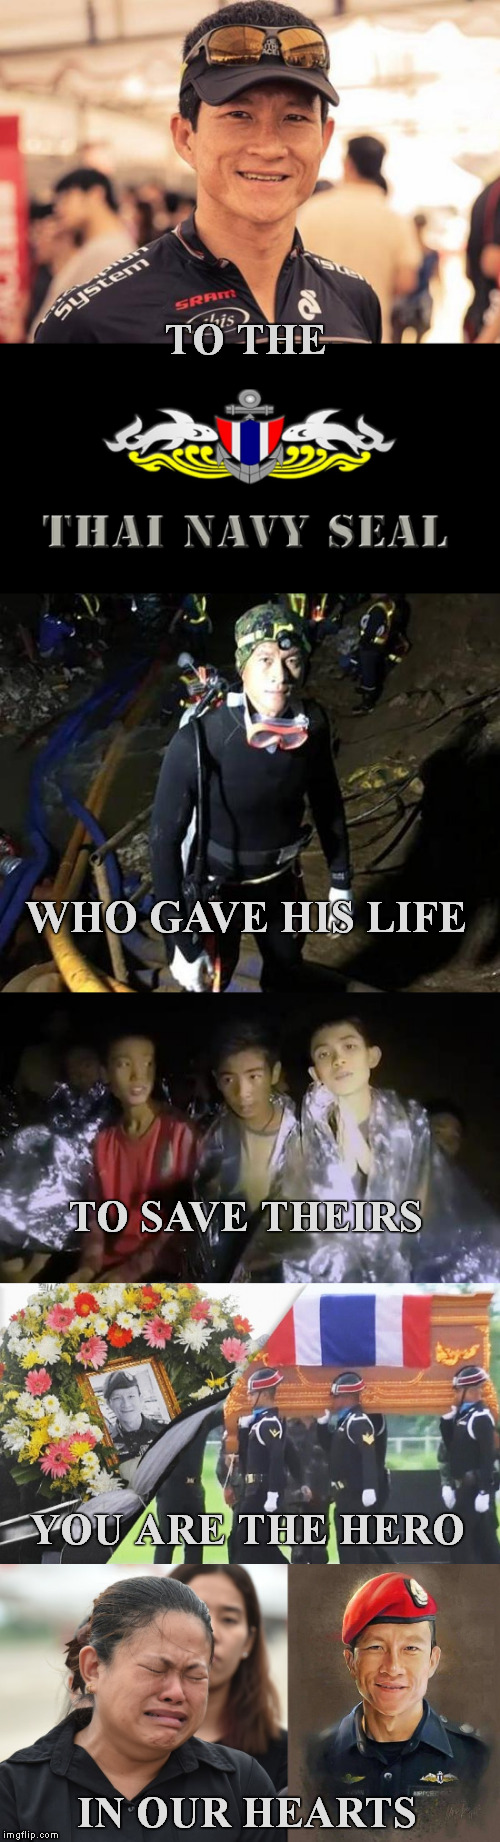 SALUTE | TO THE IN OUR HEARTS WHO GAVE HIS LIFE TO SAVE THEIRS YOU ARE THE HERO | image tagged in meme,saman gunan,thai soccer team,thailand boys,cave rescue | made w/ Imgflip meme maker